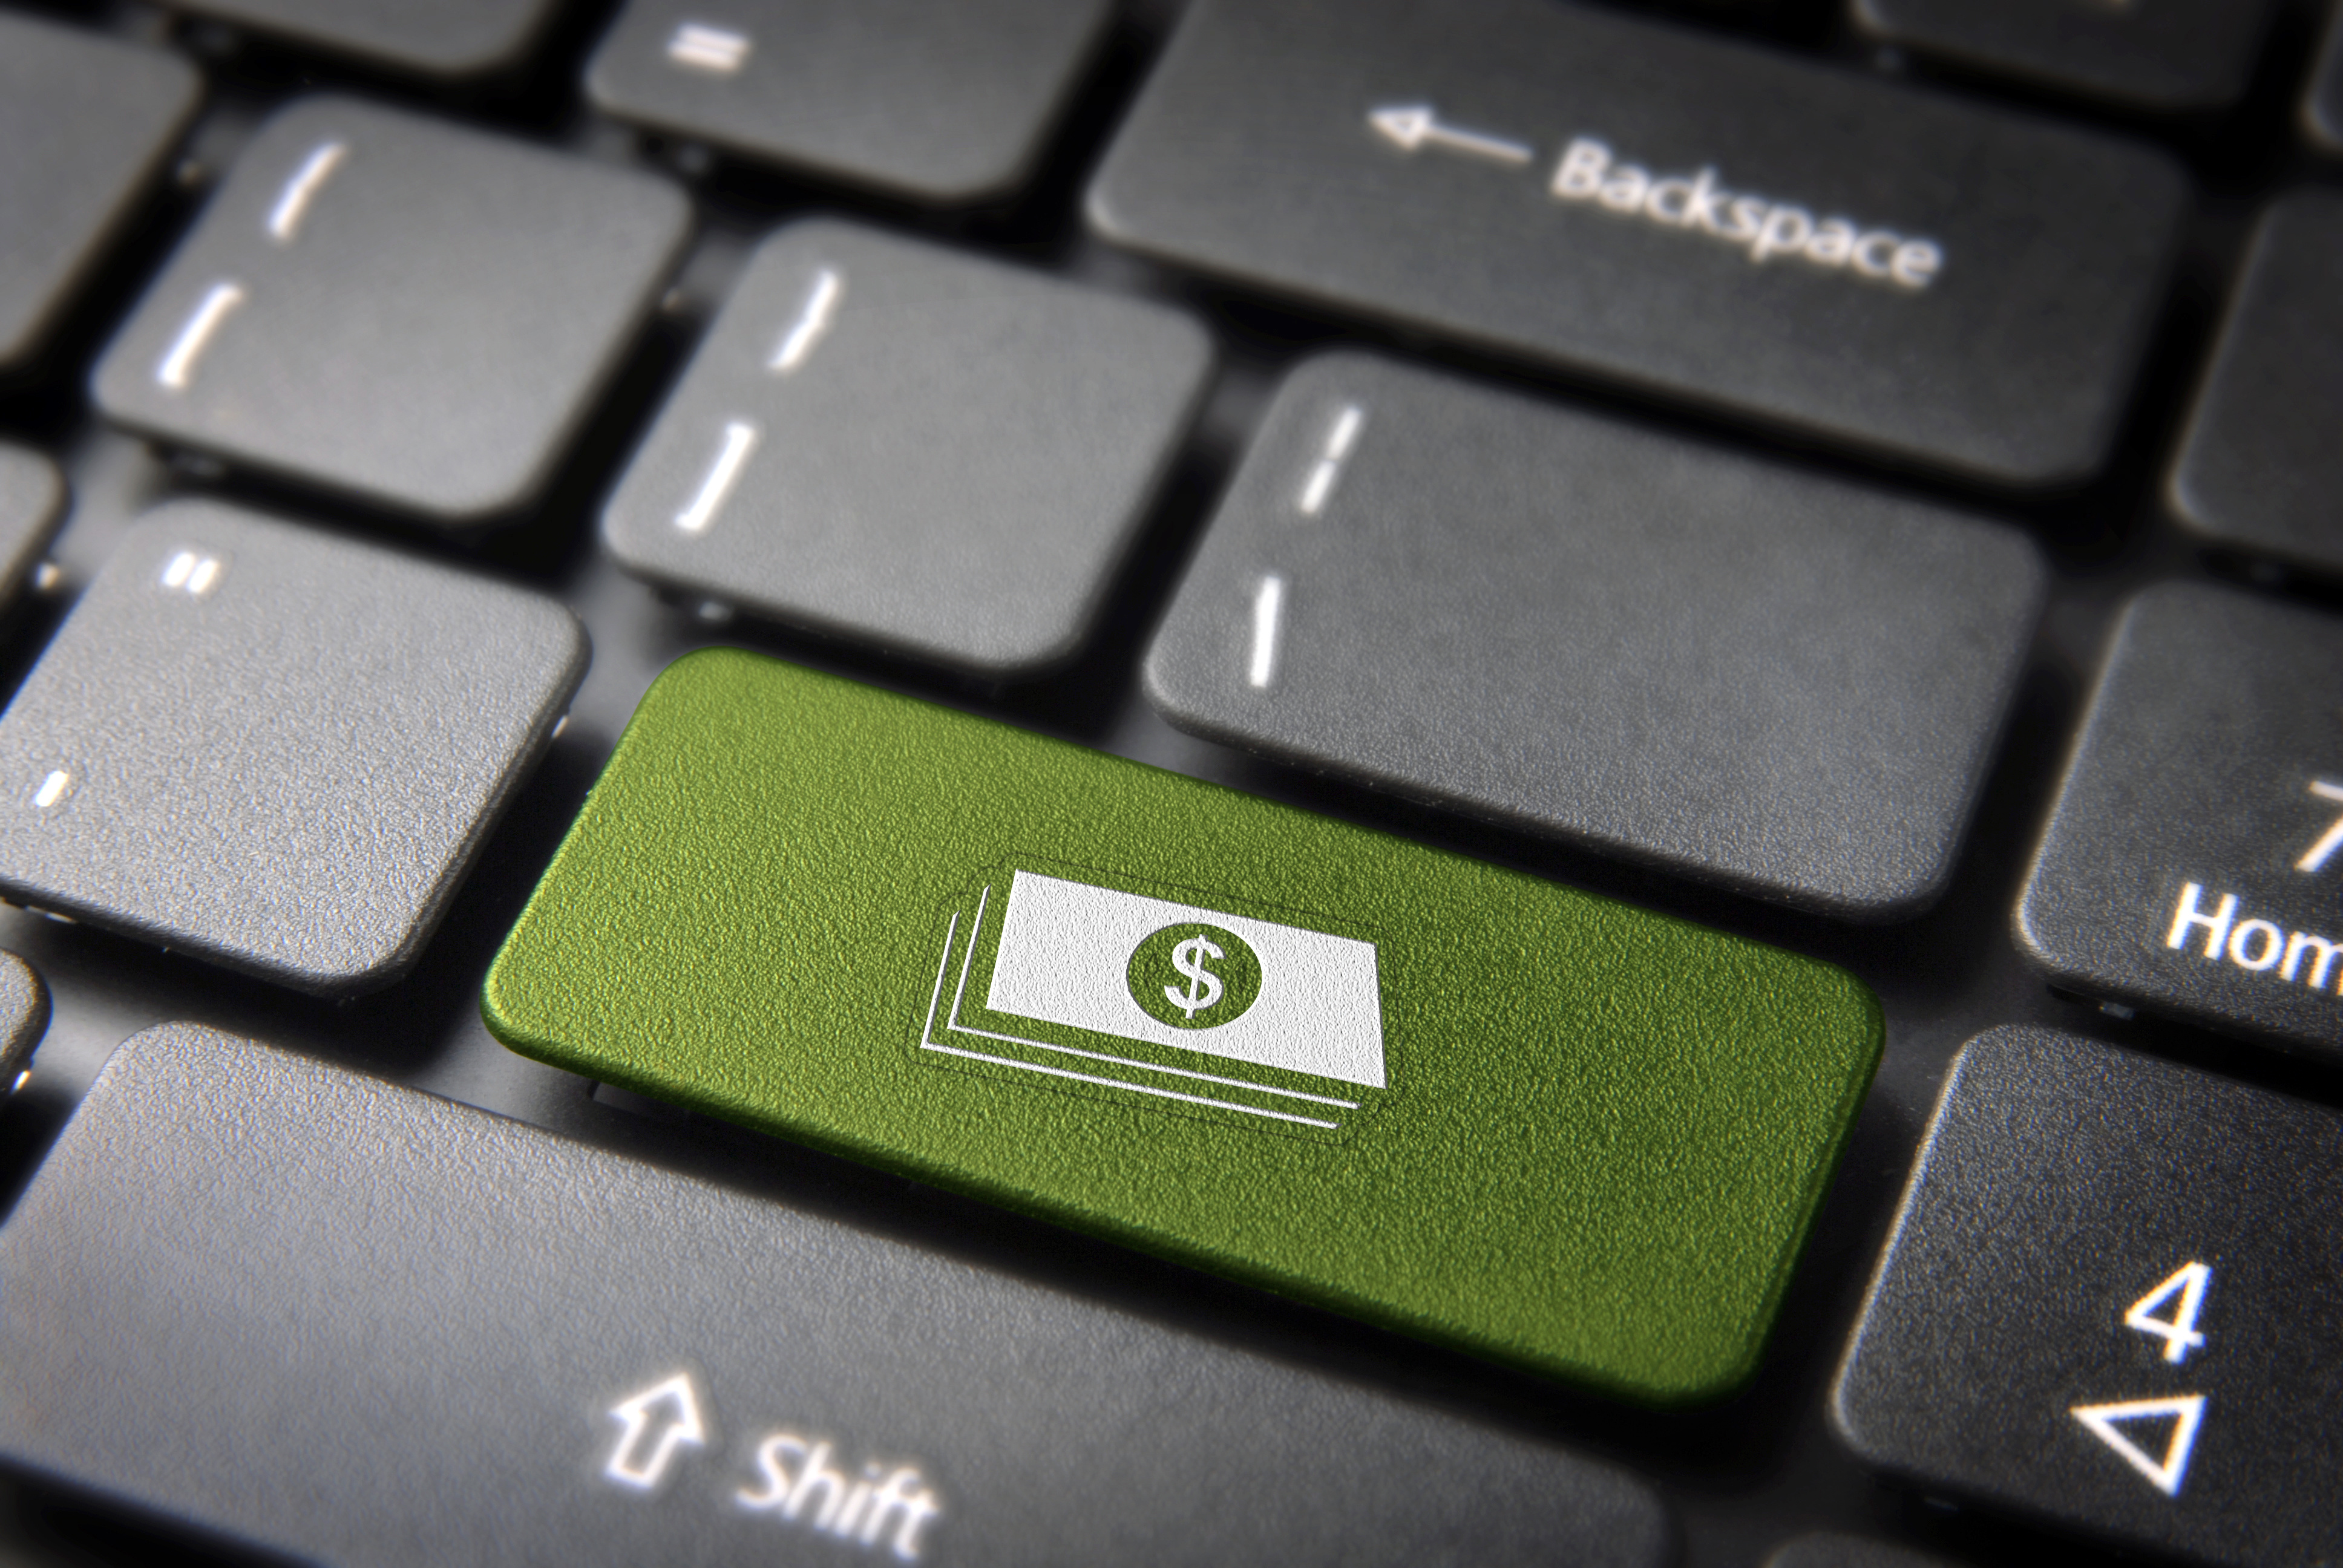 Ways To Save Money With Technology - Image 1